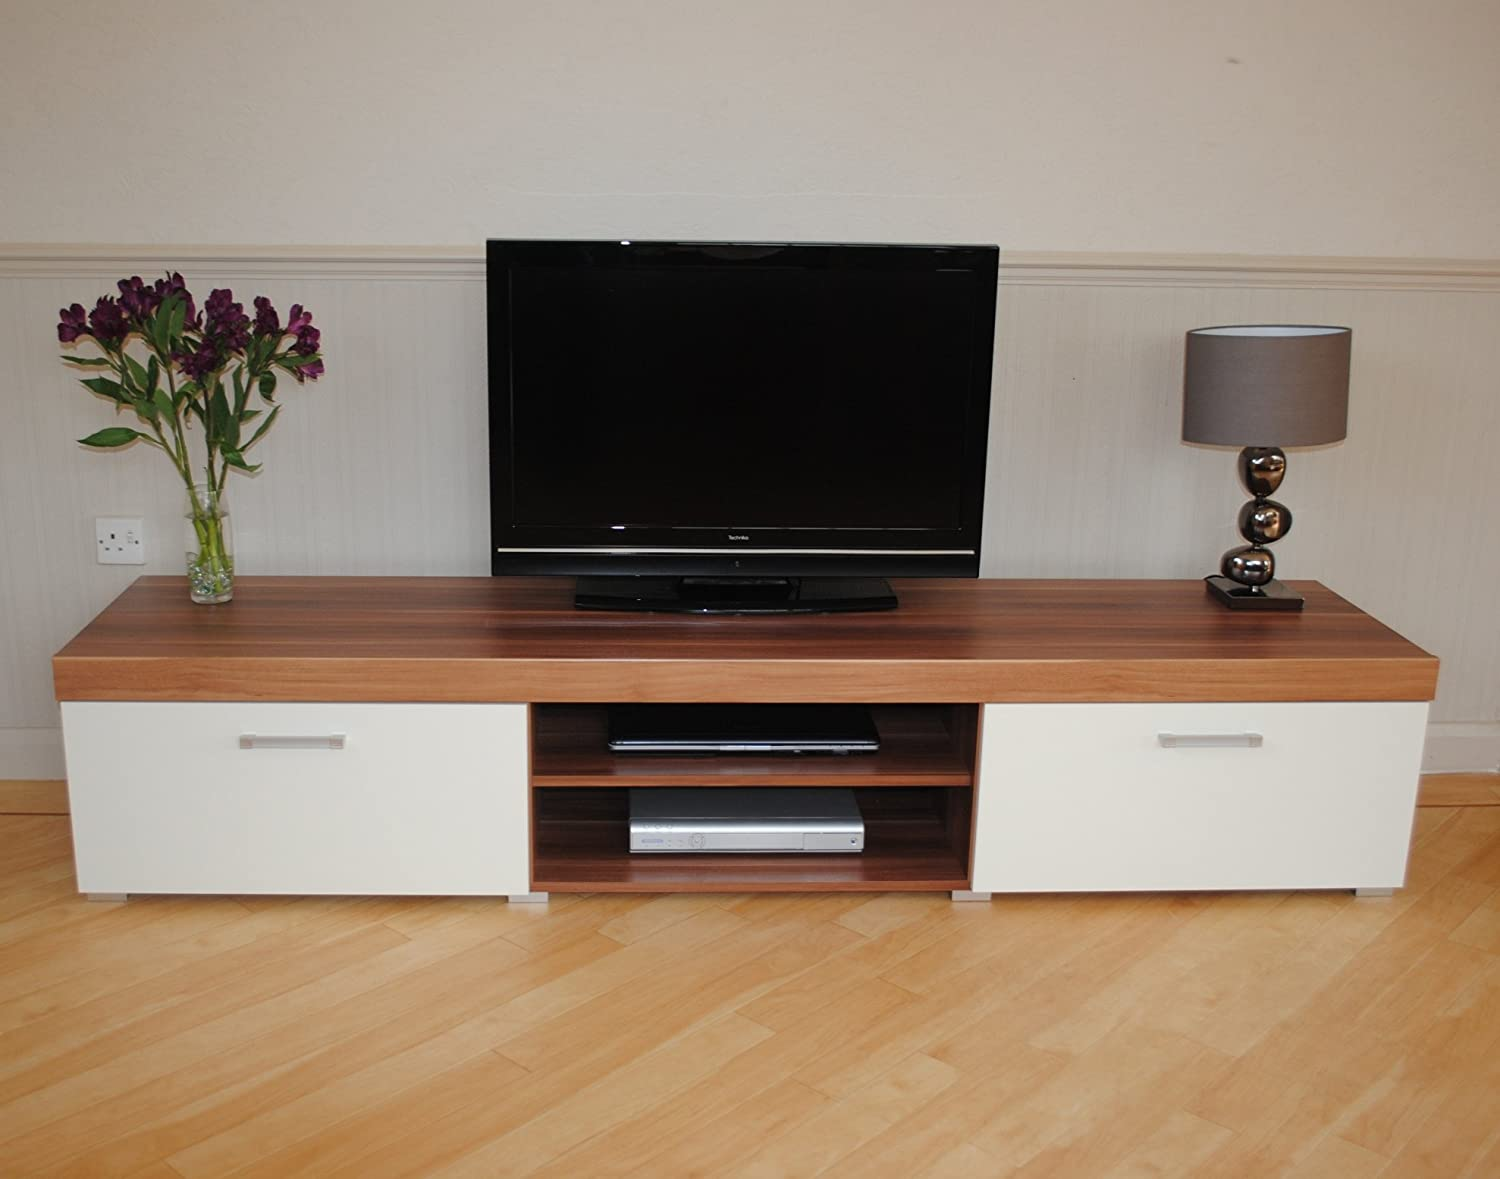 White U0026 Walnut Sydney 2 Metre TV Cabinet U0026 Large Sideboard Unit Living Room  Furniture Set: Amazon.co.uk: Kitchen U0026 Home